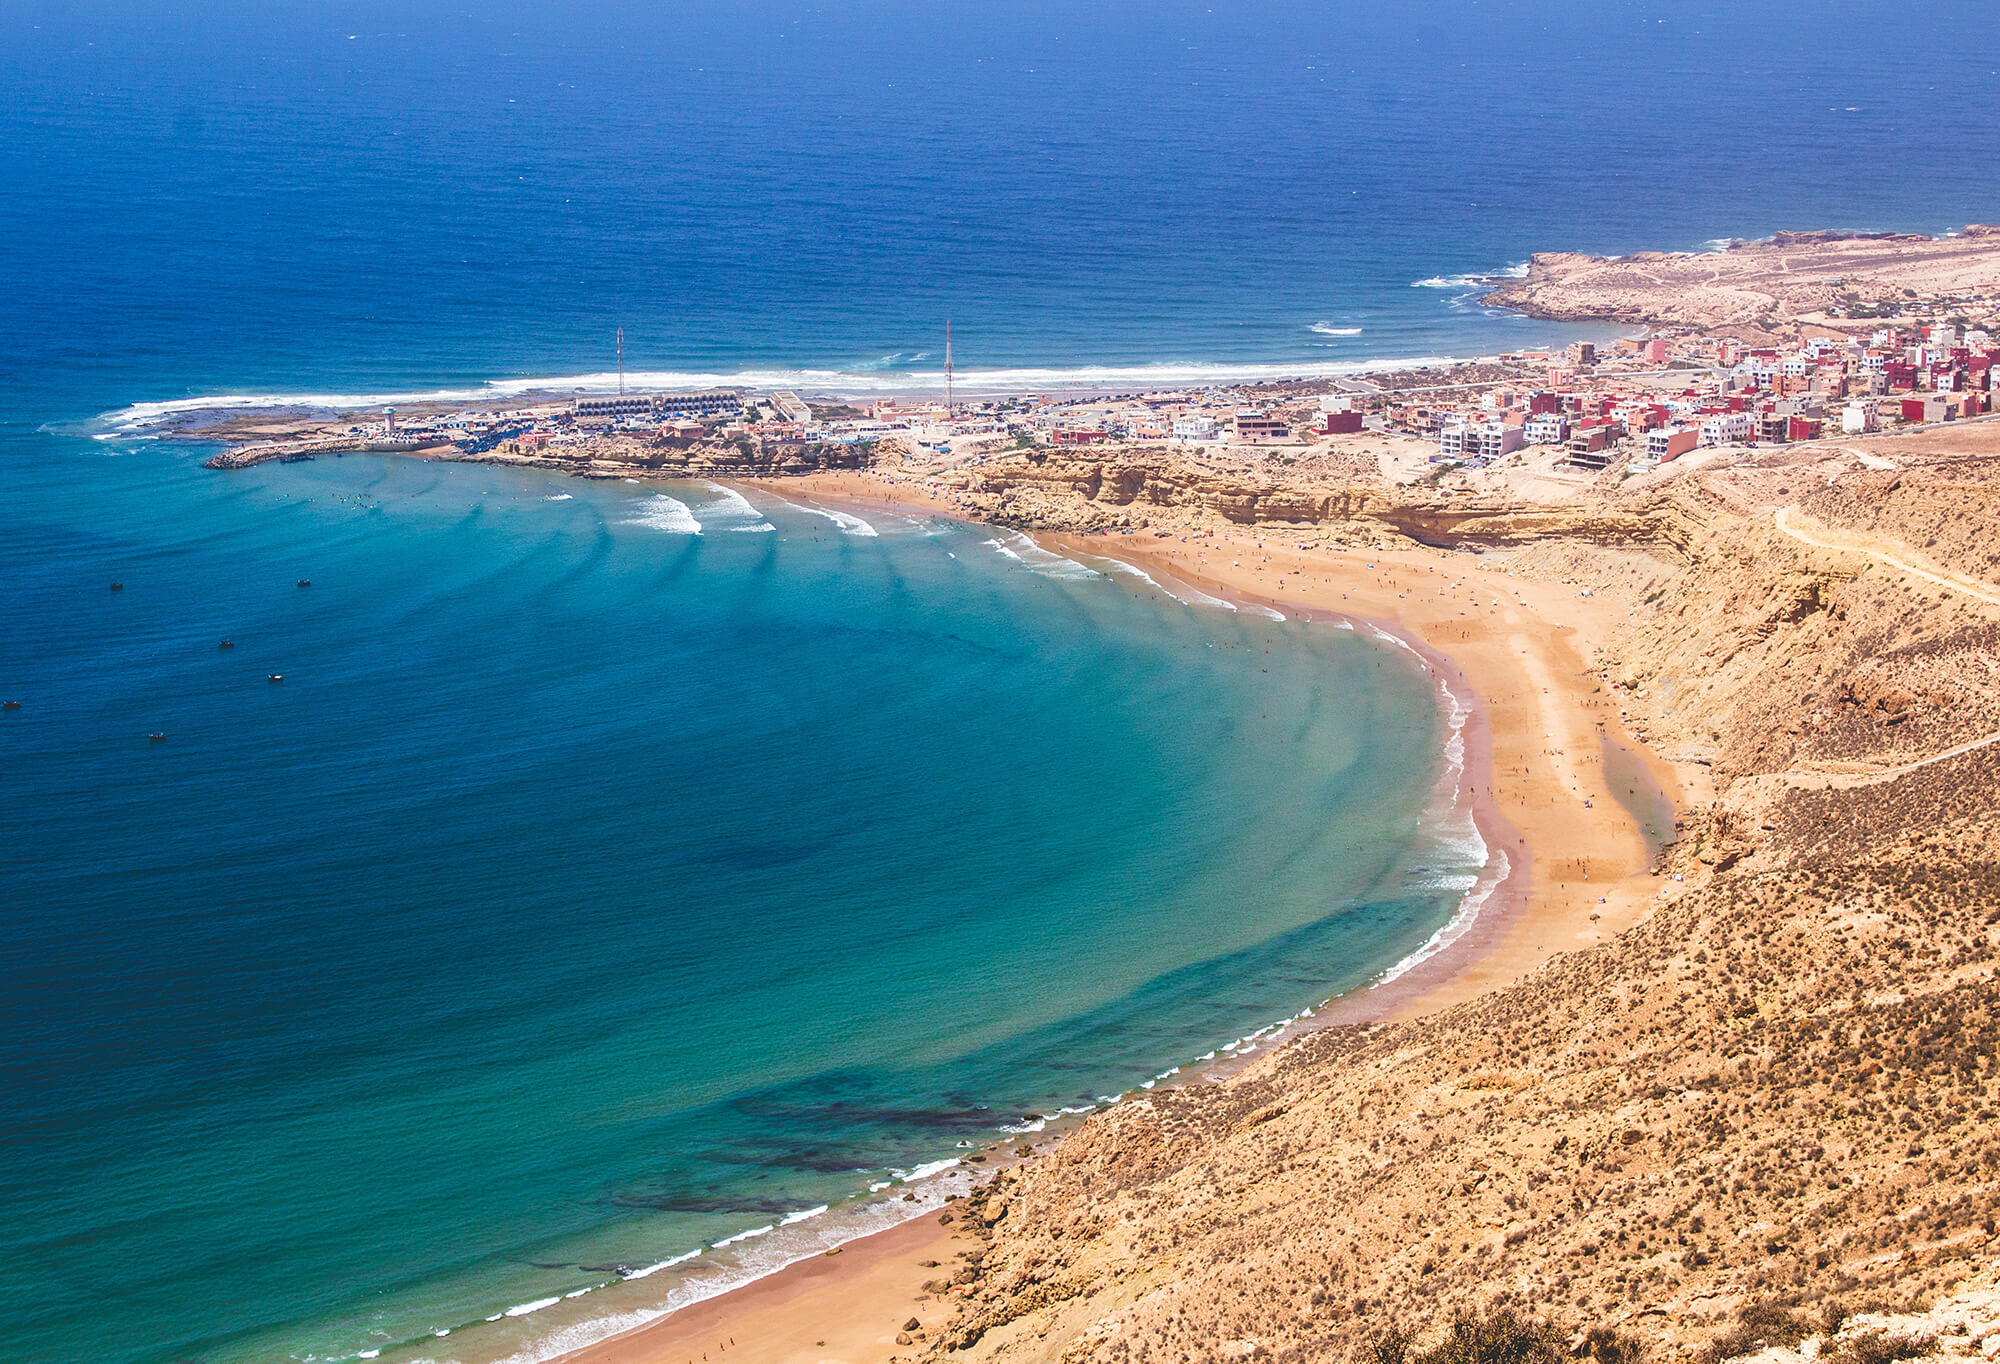 Sahara Desert Tour - Surfing Experience in Morocco - The Ultimate Guide